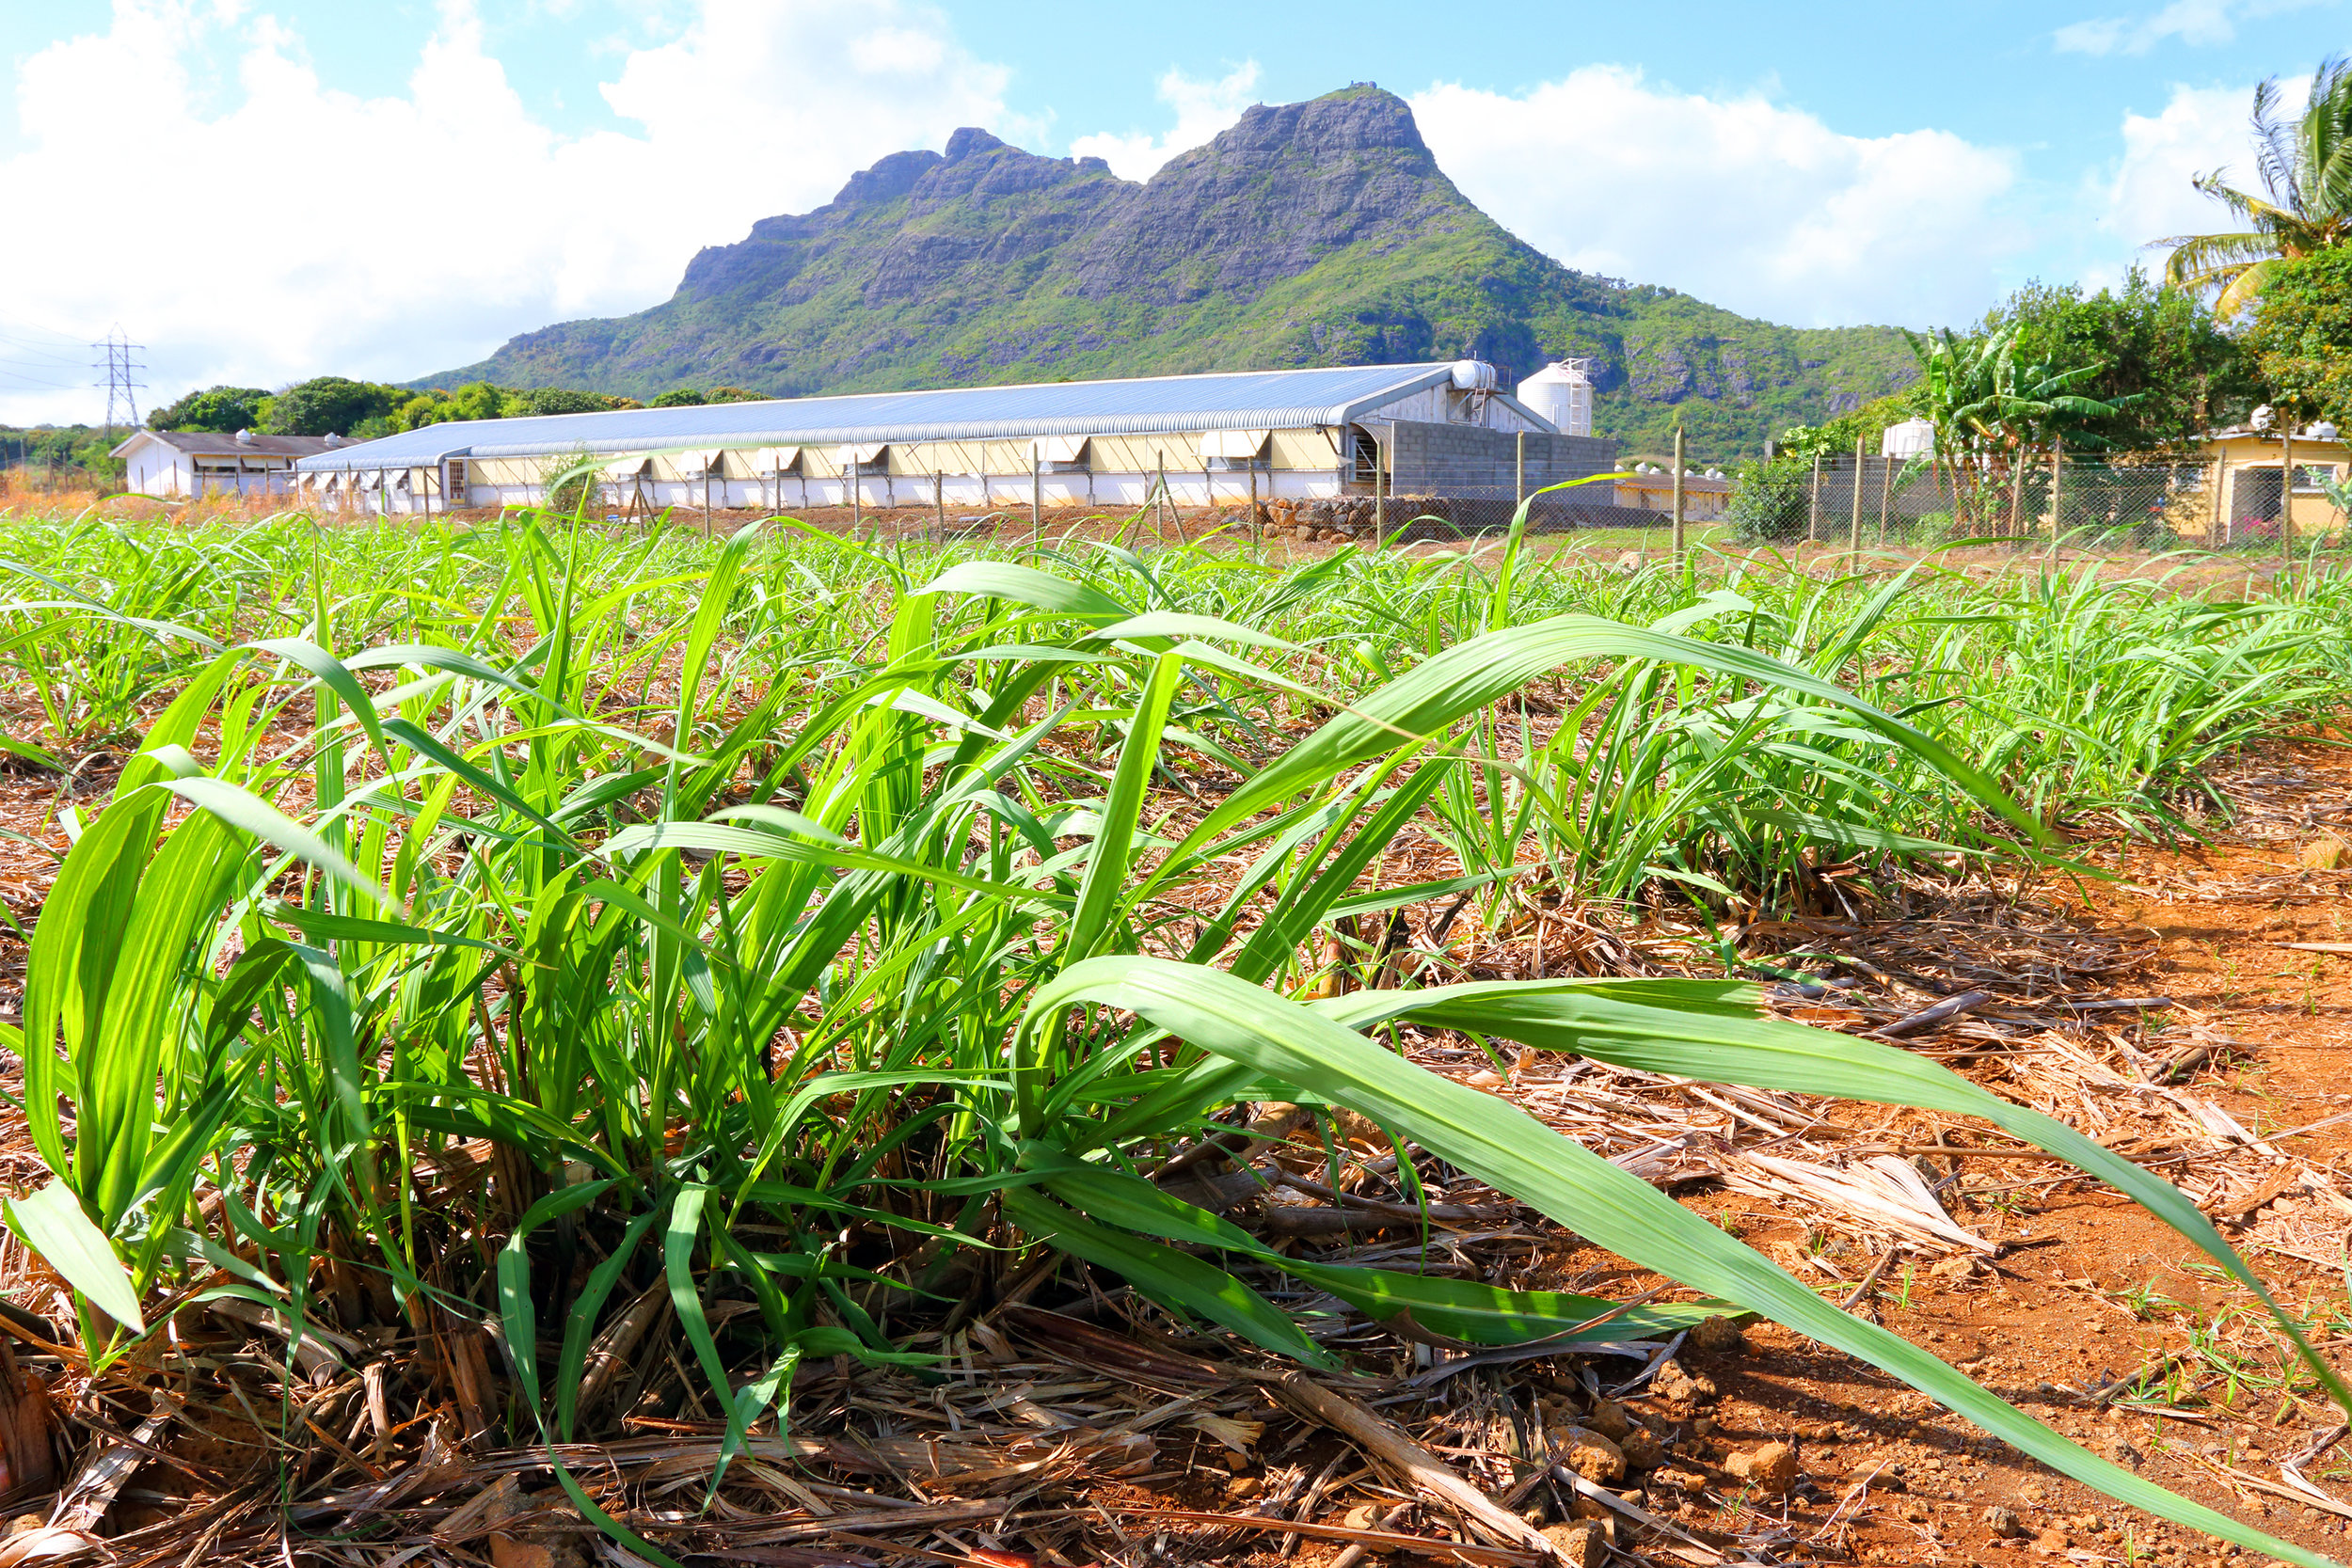 Field of sugarcane with Ag facility and mtn.jpg